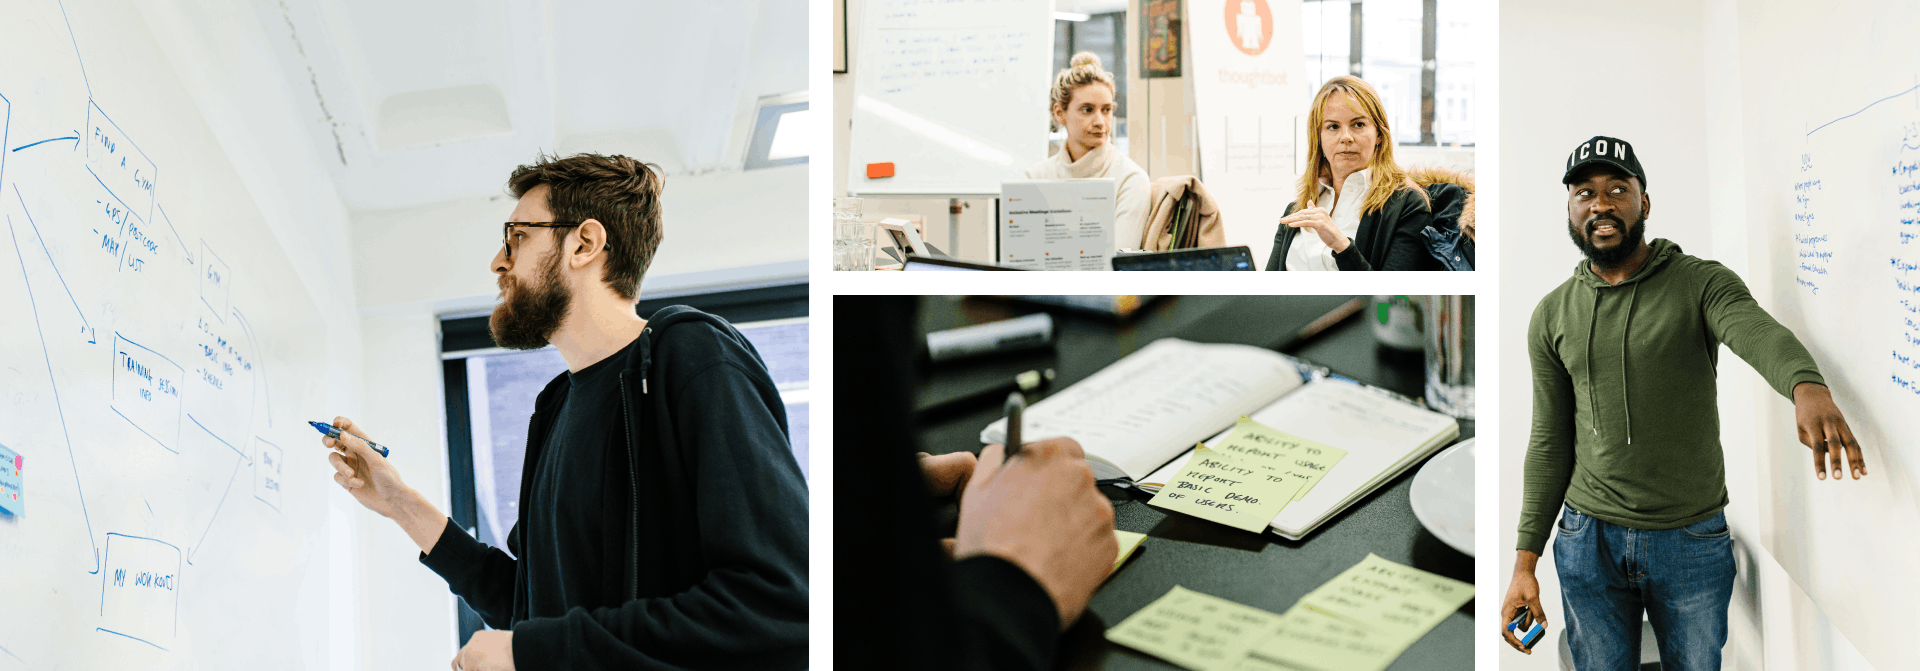 Four photos of the Steel Warriors workshop; a designer drawing on a whiteboard, two people at a meeting room table, someone writing on a post-it, a designer looking and pointing at a whiteboard